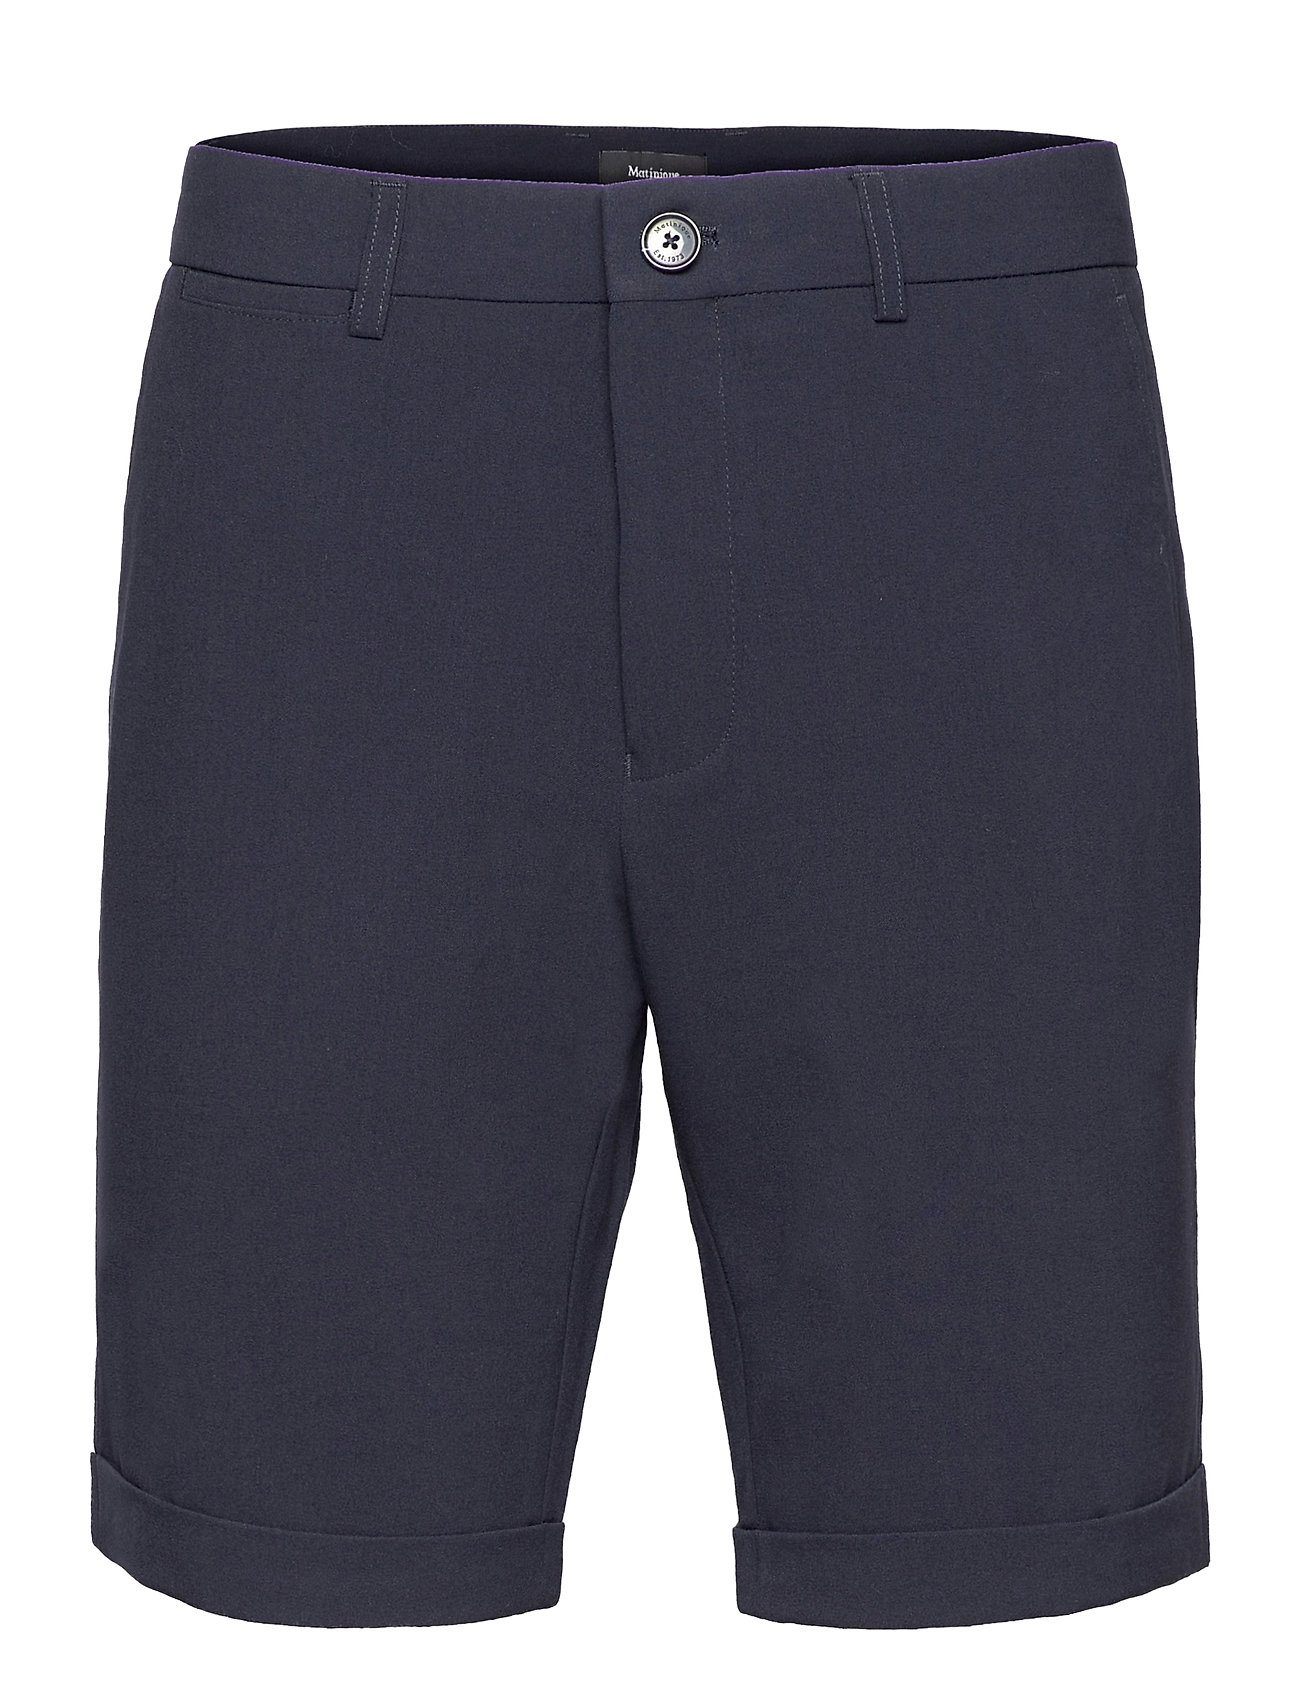 Image of Maliam Sh Shorts Casual Blå Matinique (3516050959)